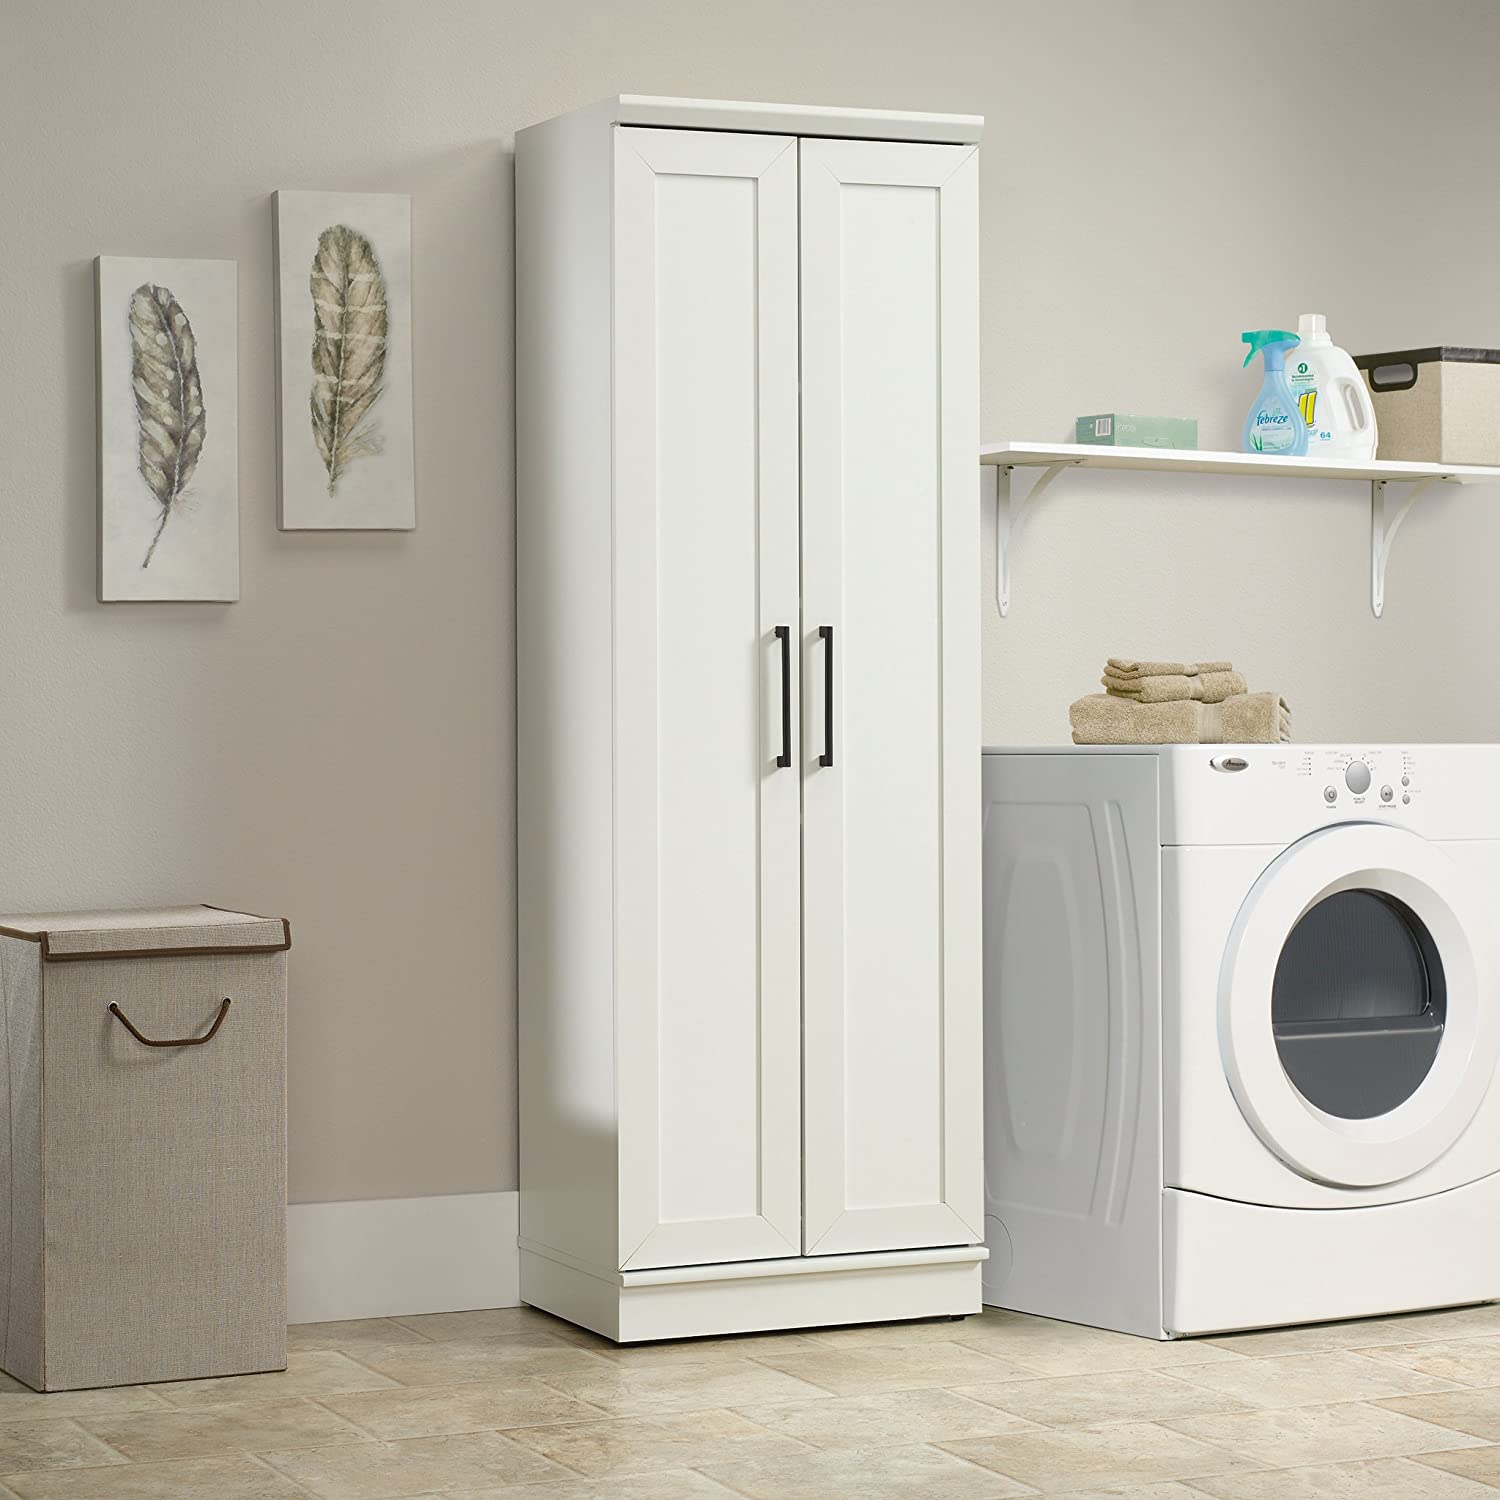 Top 10 Best Towel Cabinets in 2021 Reviews